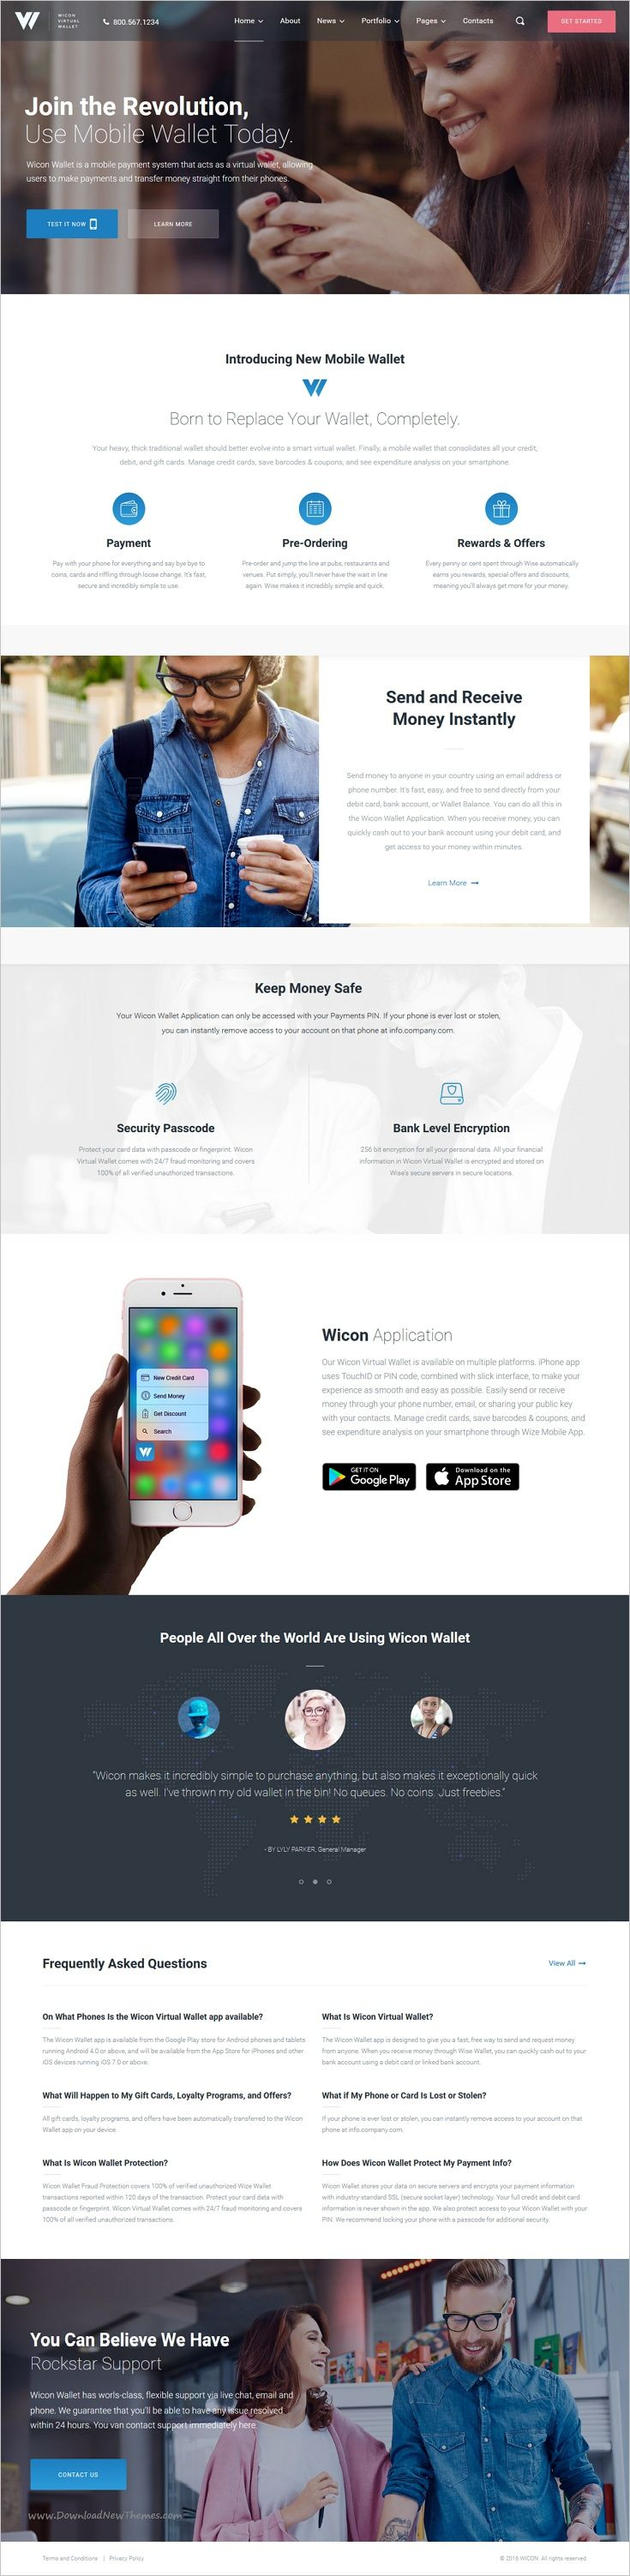 Wicon is a stylish and elegant #WordPress theme designed to help you #showcase your online #wallet application websites download now➩ https://themeforest.net/item/mobile-wallet-application-wordpress-theme-wicon/19264931?ref=Datasata